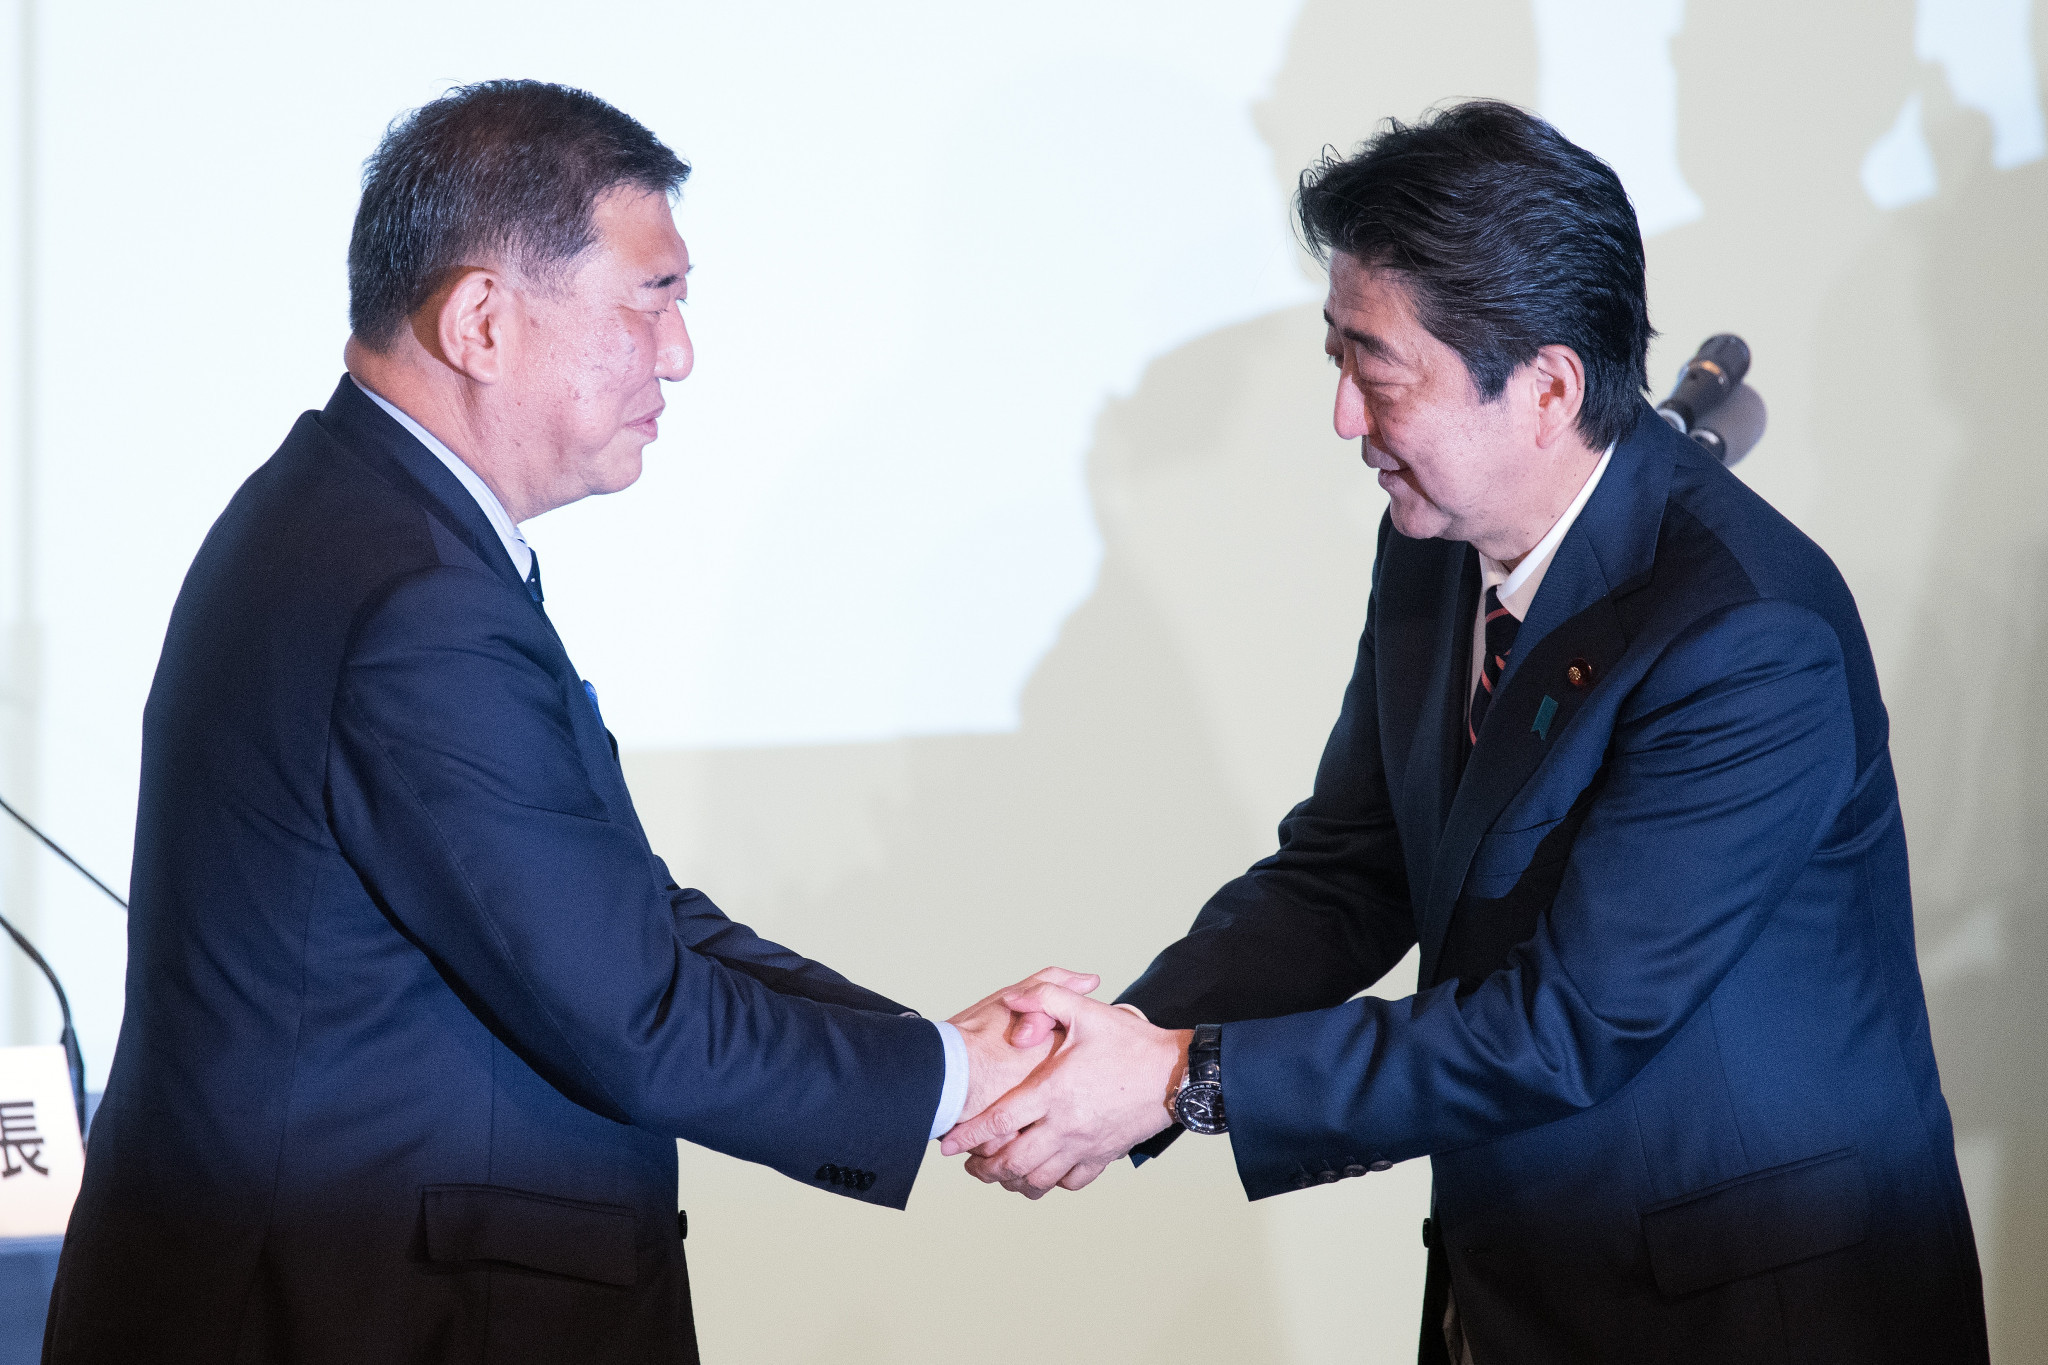 Shigeru Ishiba, left, is favoured by the Japanese public to replace long-serving Prime Minister Shinzō Abe, right ©Getty Images